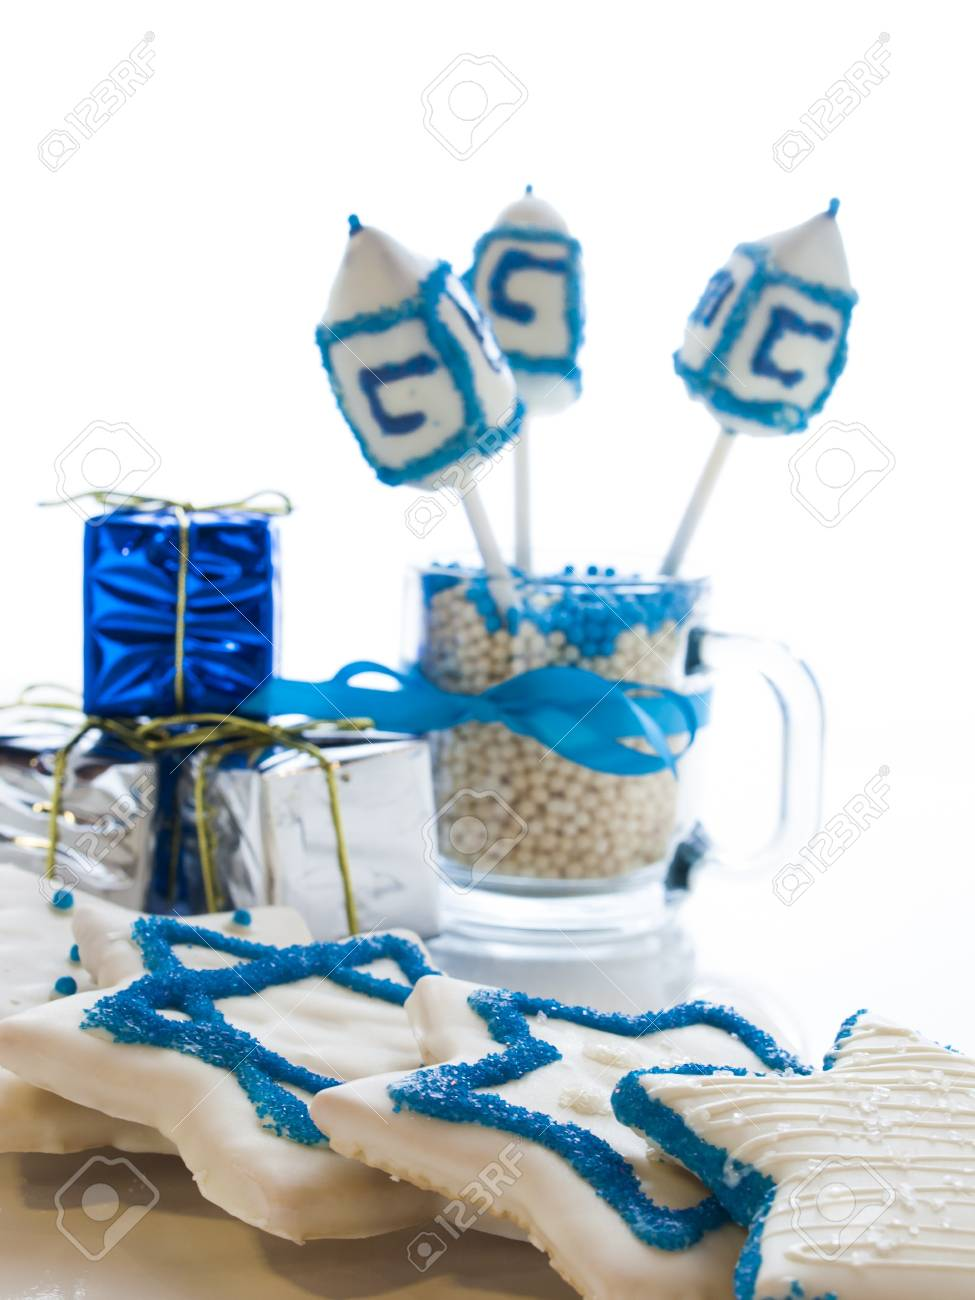 Gourmet dreidels decorated with white icing for Hanukkah. Stock Photo - 15943890